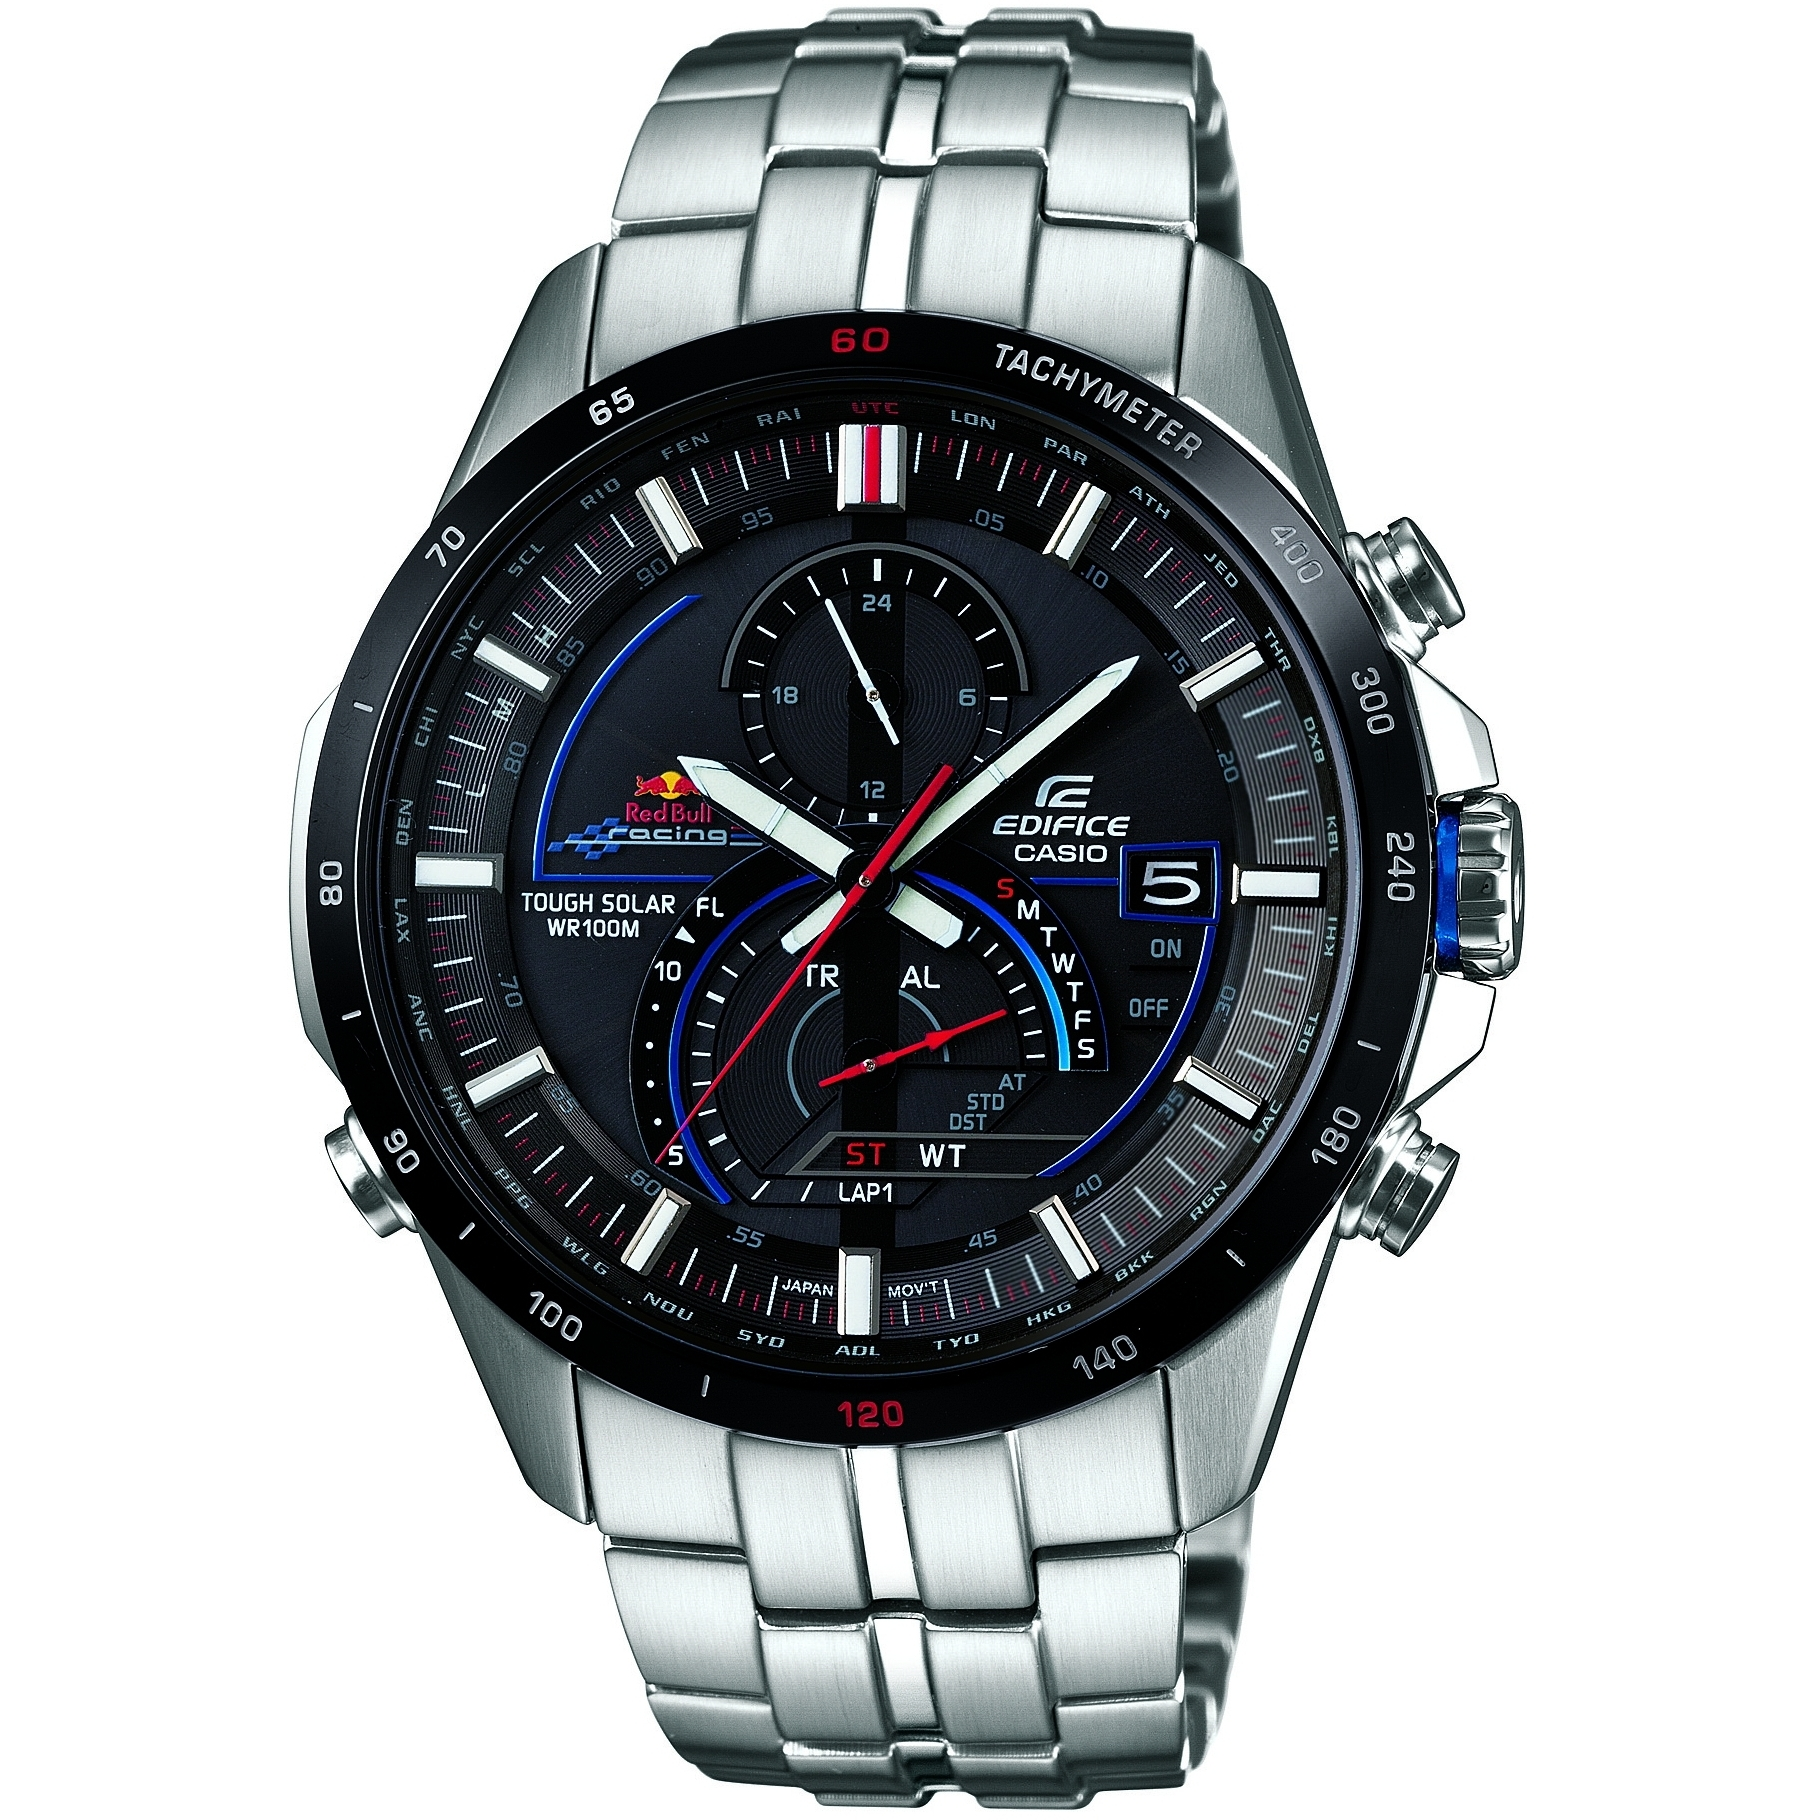 30d4f85d8991 Gents Casio Edifice Red Bull Limited Edition Alarm Chronograph Watch  (EQS-A500RB-1AVER)